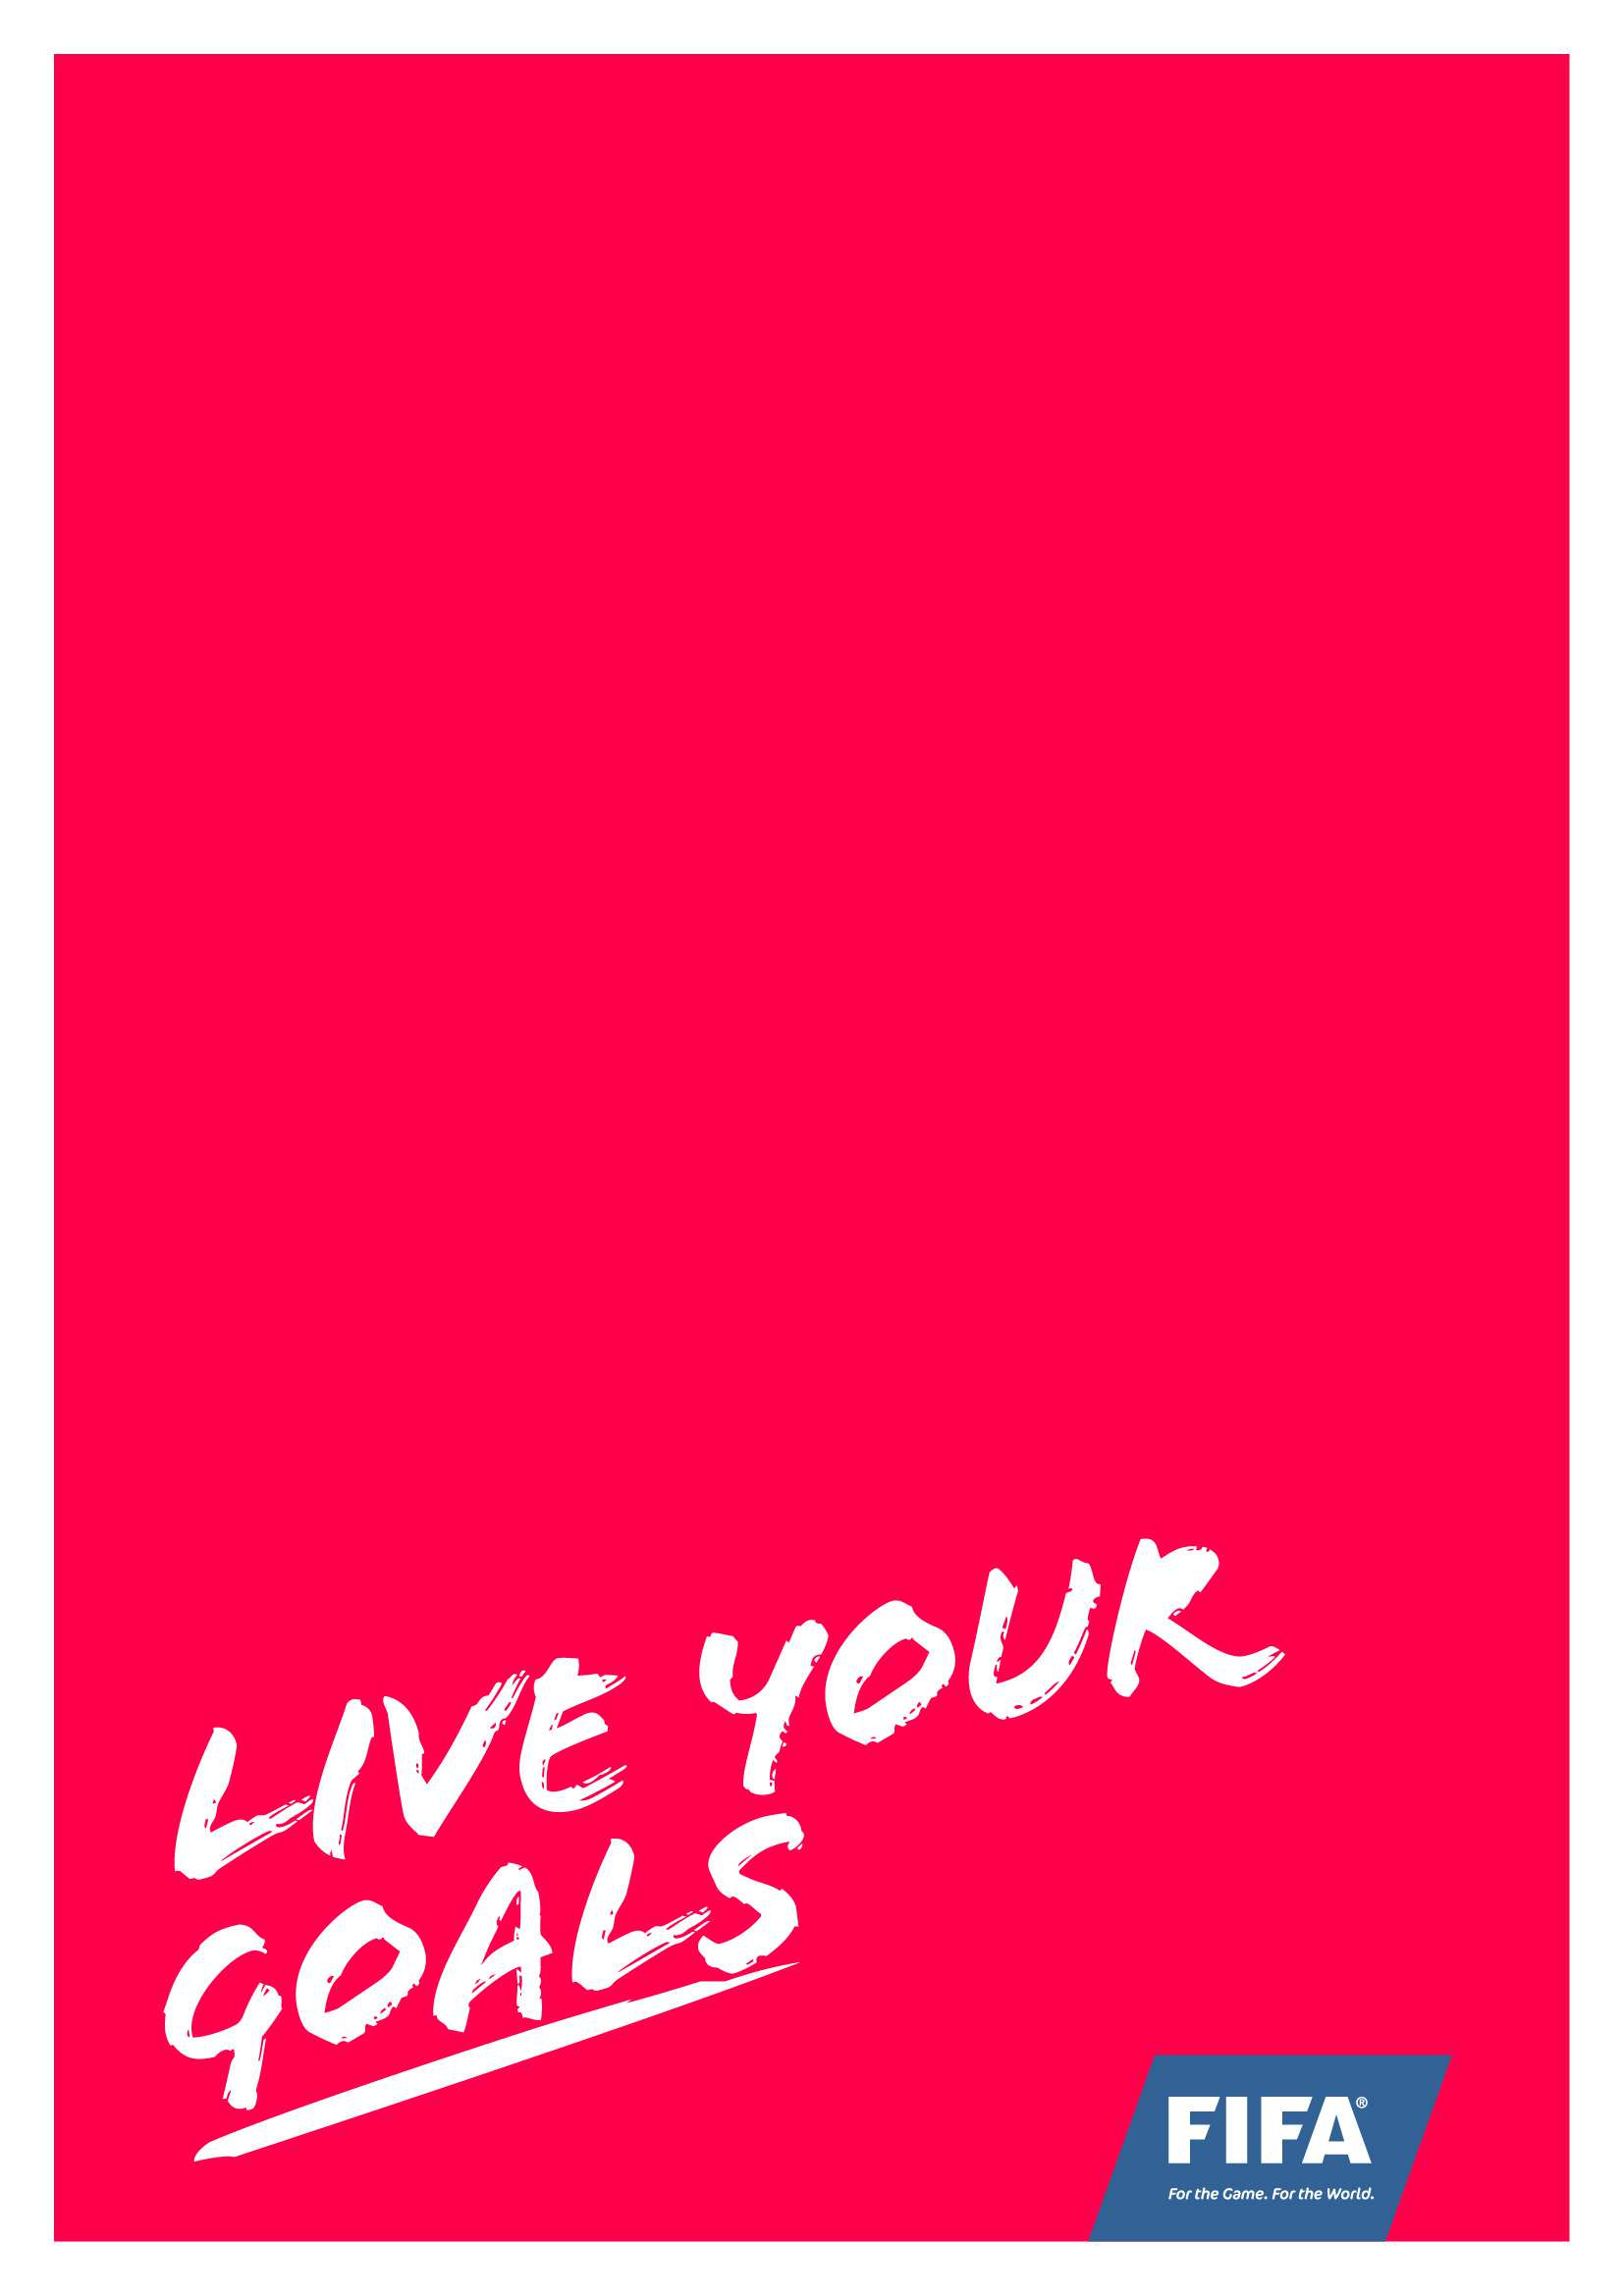 FIFA s LIVE YOUR GOALS campaign